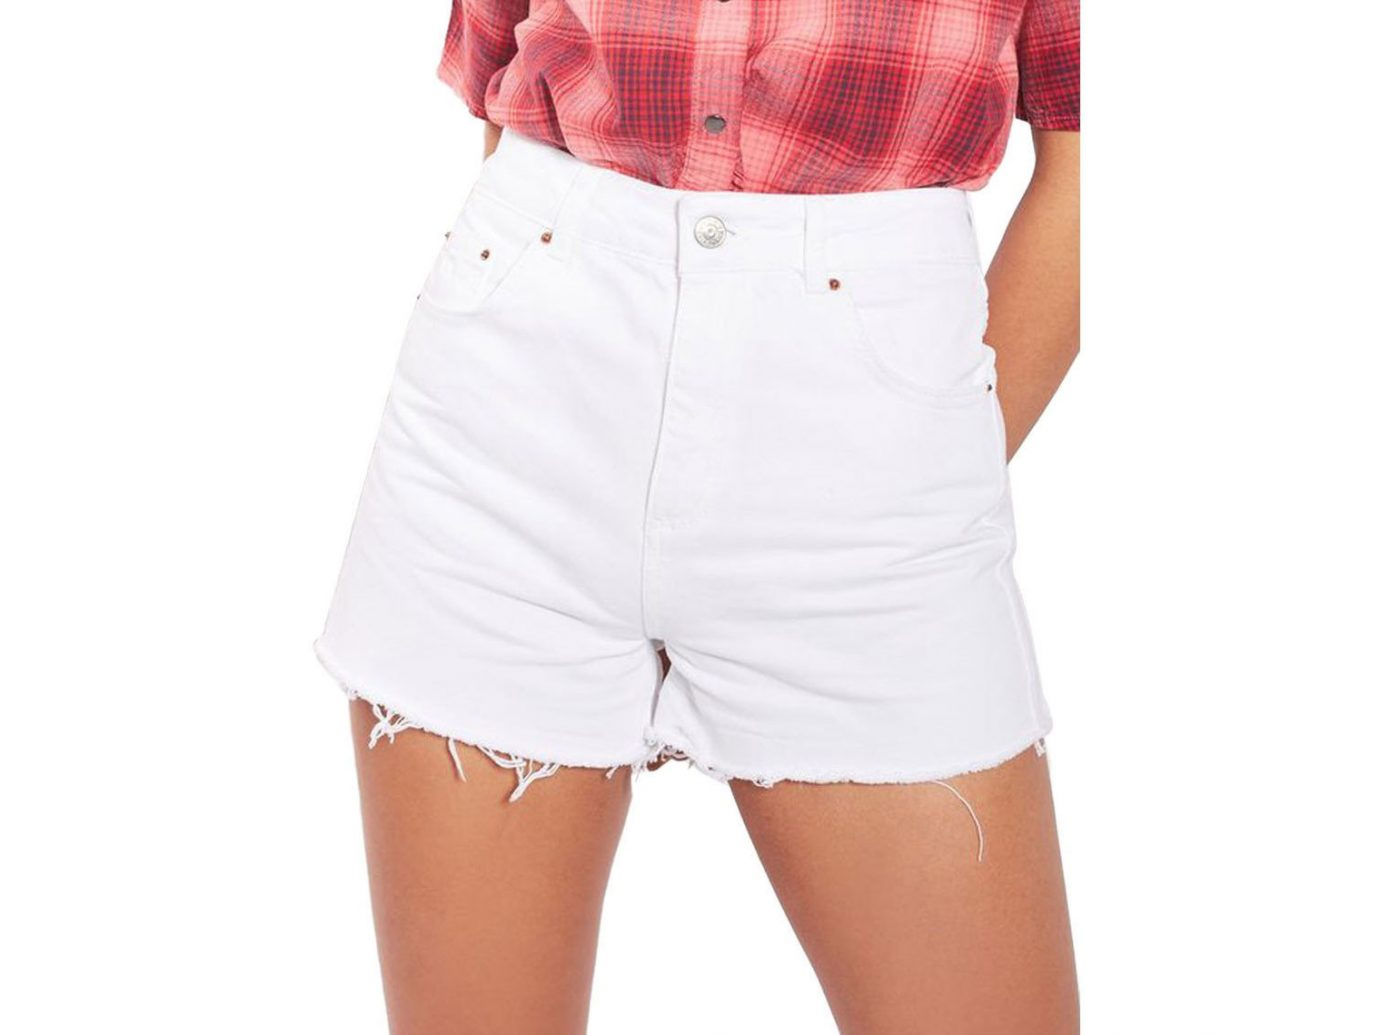 Style + Design person clothing shorts wearing trunks pocket posing abdomen sleeve pattern textile trouser